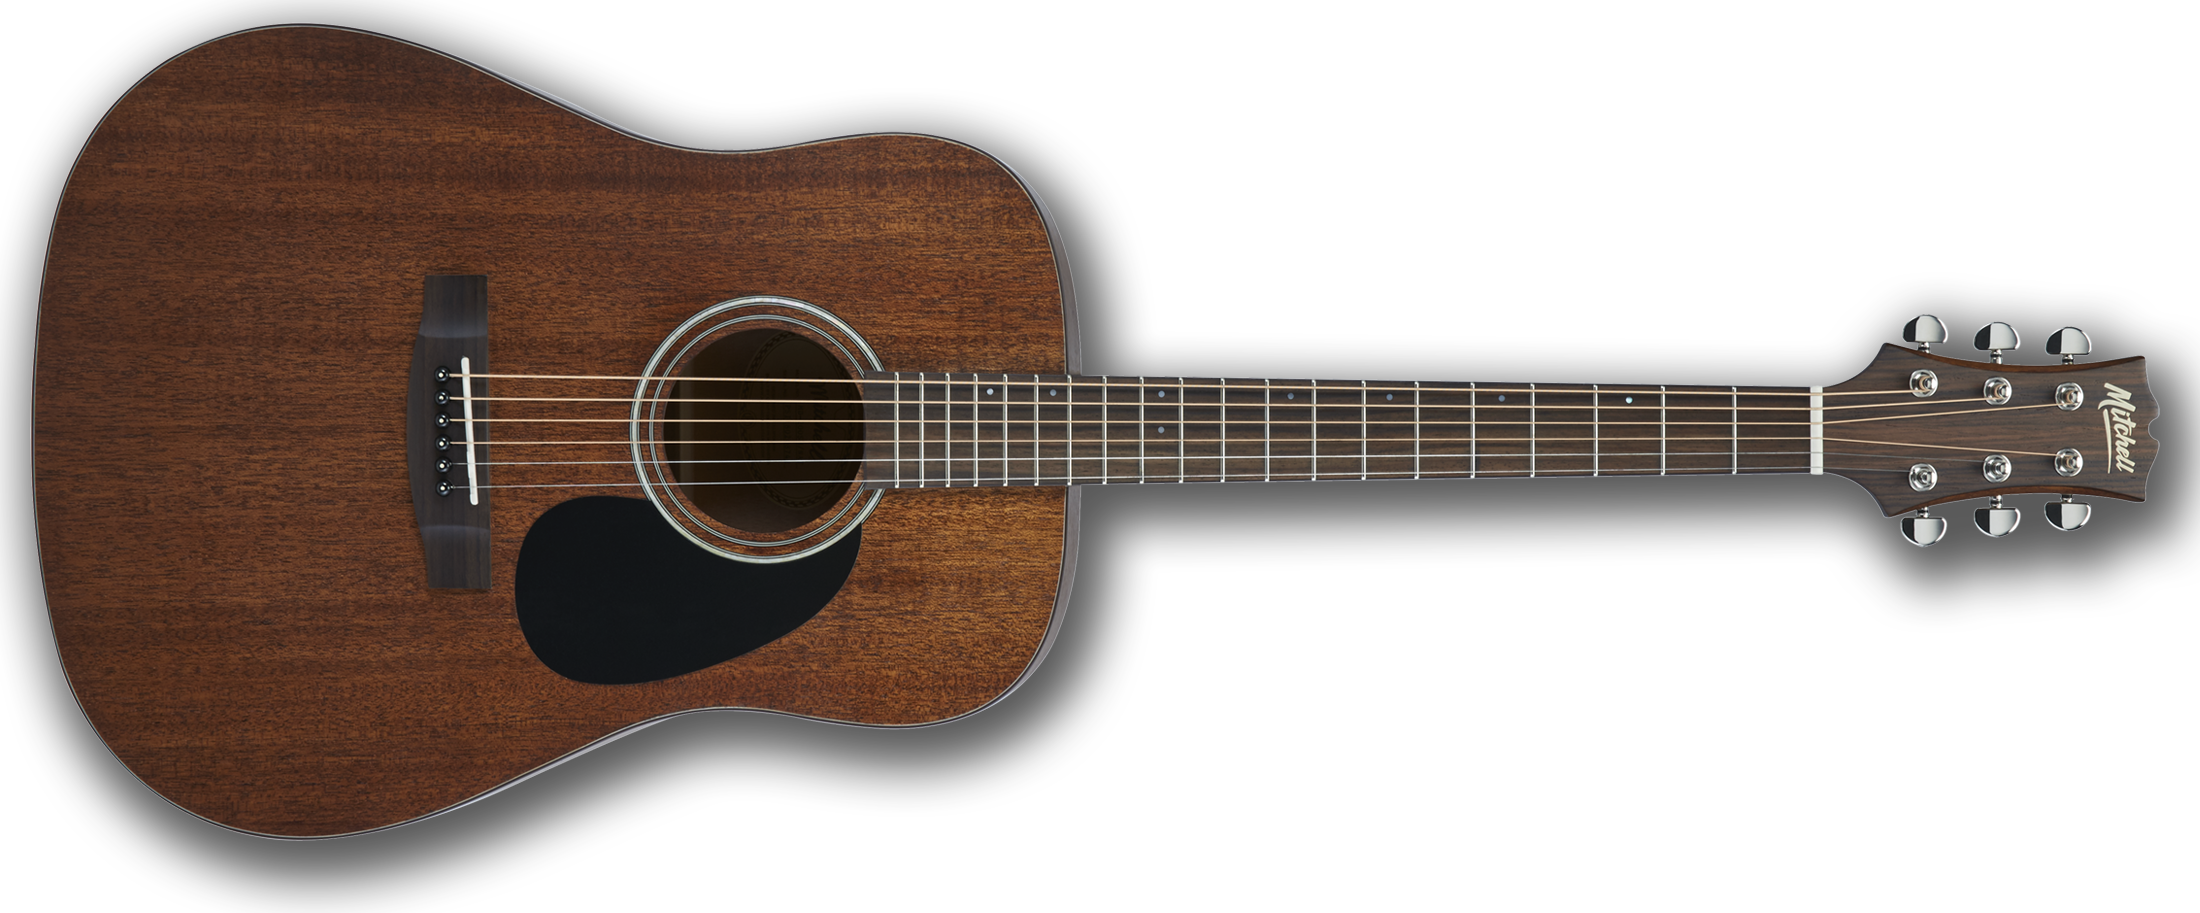 Mitchell T331 Dreadnought Acoustic Guitar Terra Series